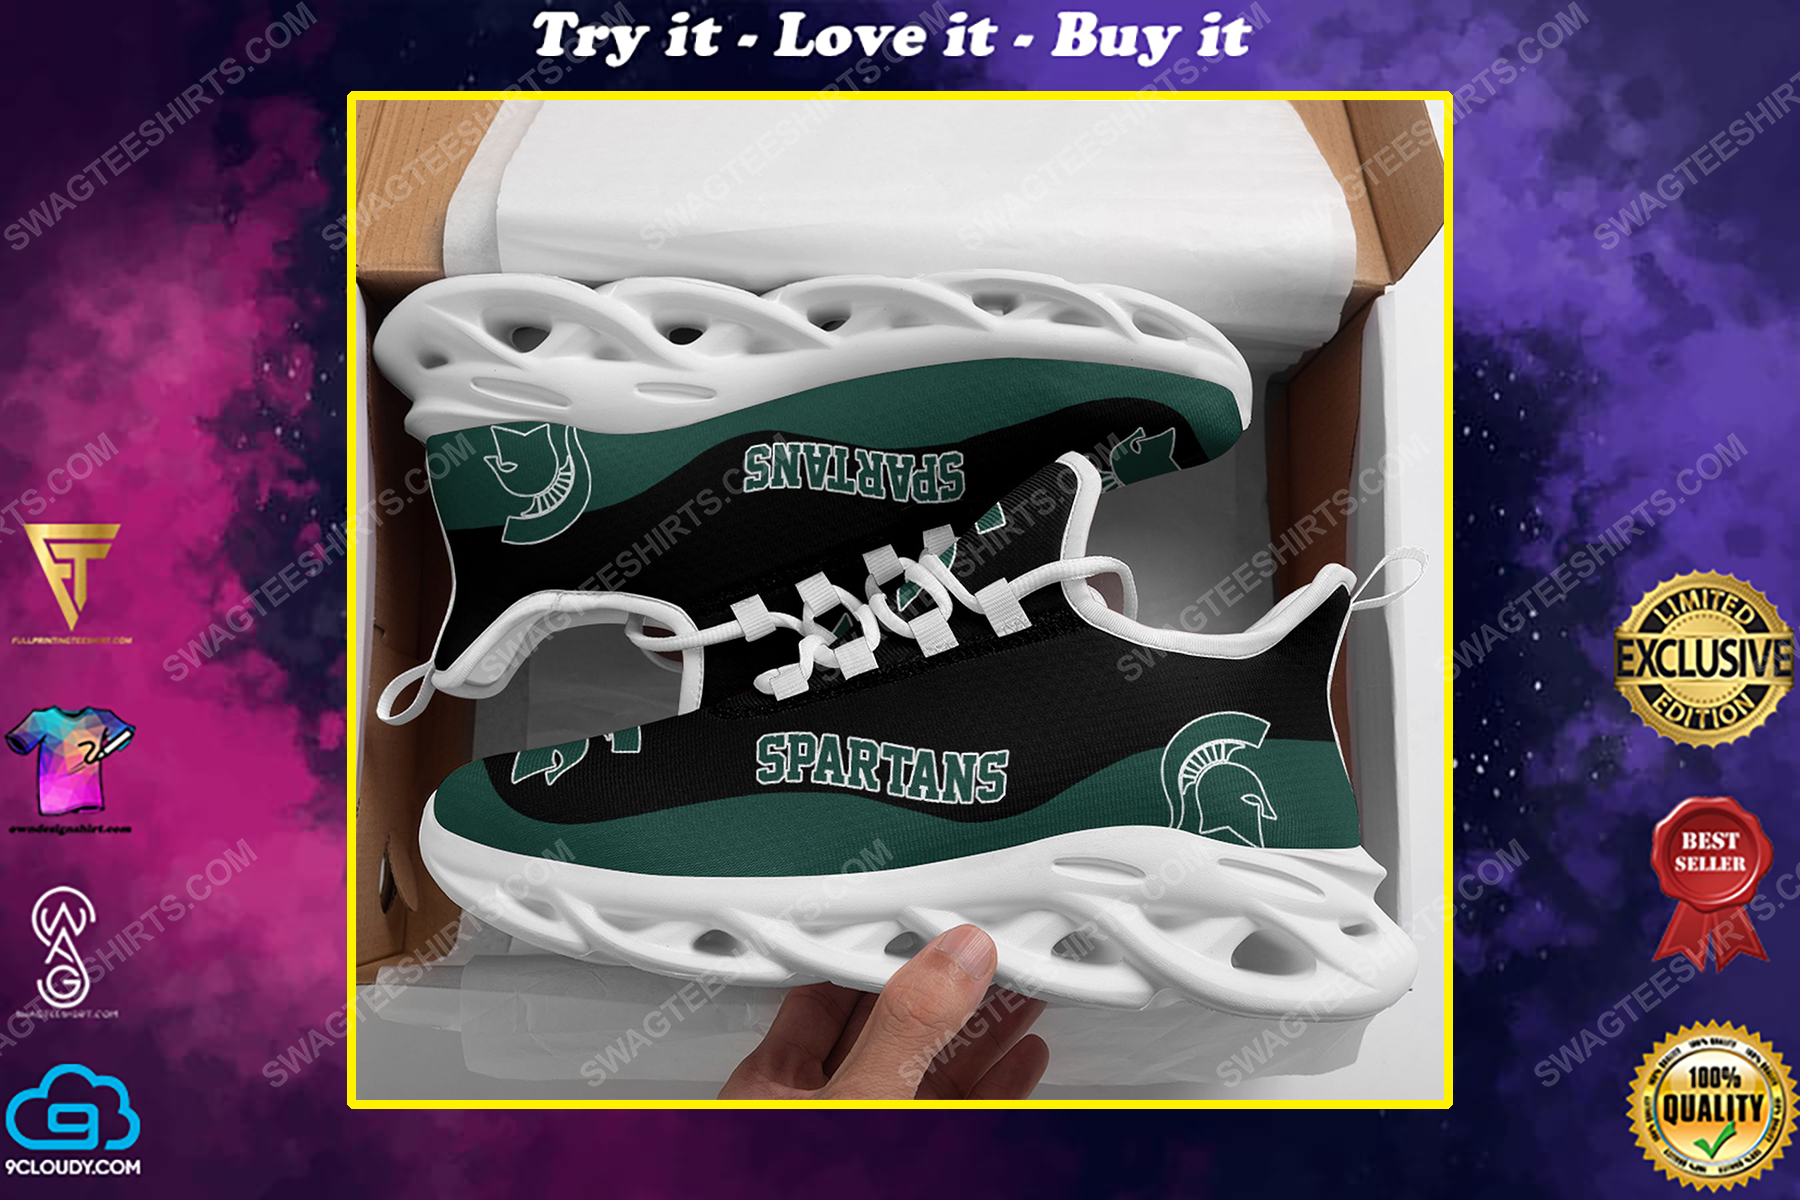 The michigan state spartans football team max soul shoes